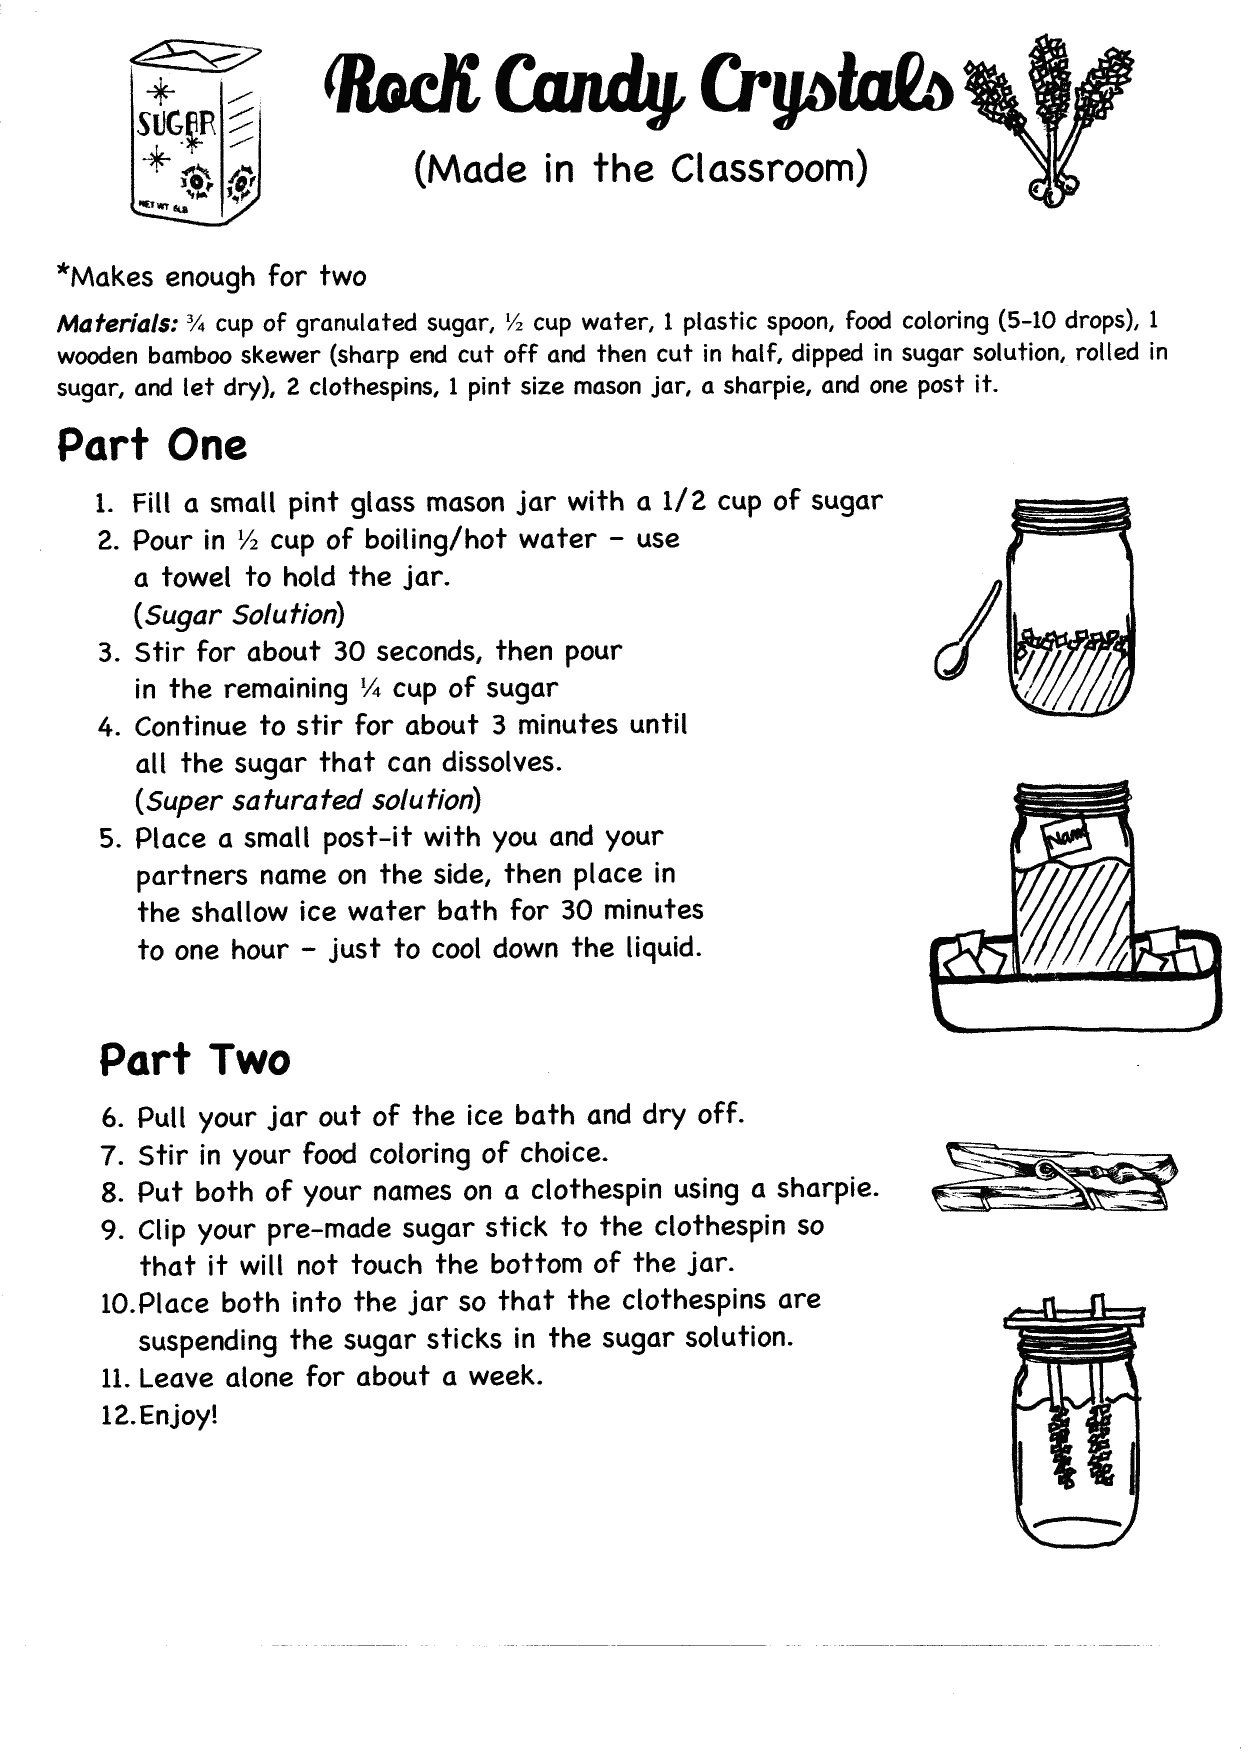 Free 8th Grade Science Worksheets Rock Candy Crystals In the Classroom Pg 1 Of 2 8th Grade